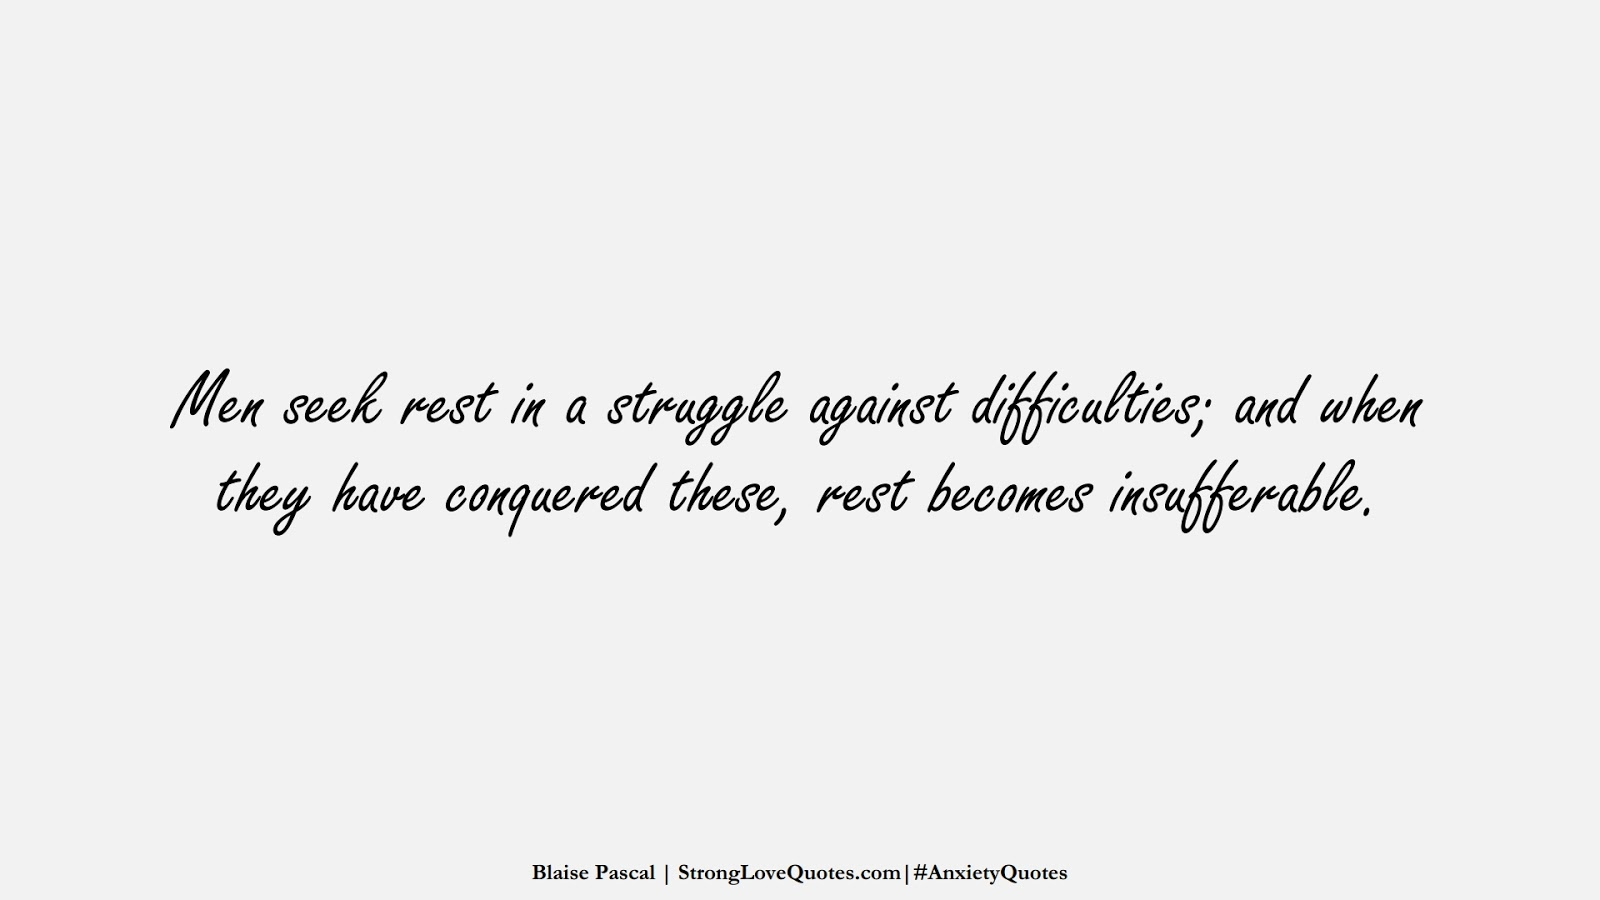 Men seek rest in a struggle against difficulties; and when they have conquered these, rest becomes insufferable. (Blaise Pascal);  #AnxietyQuotes